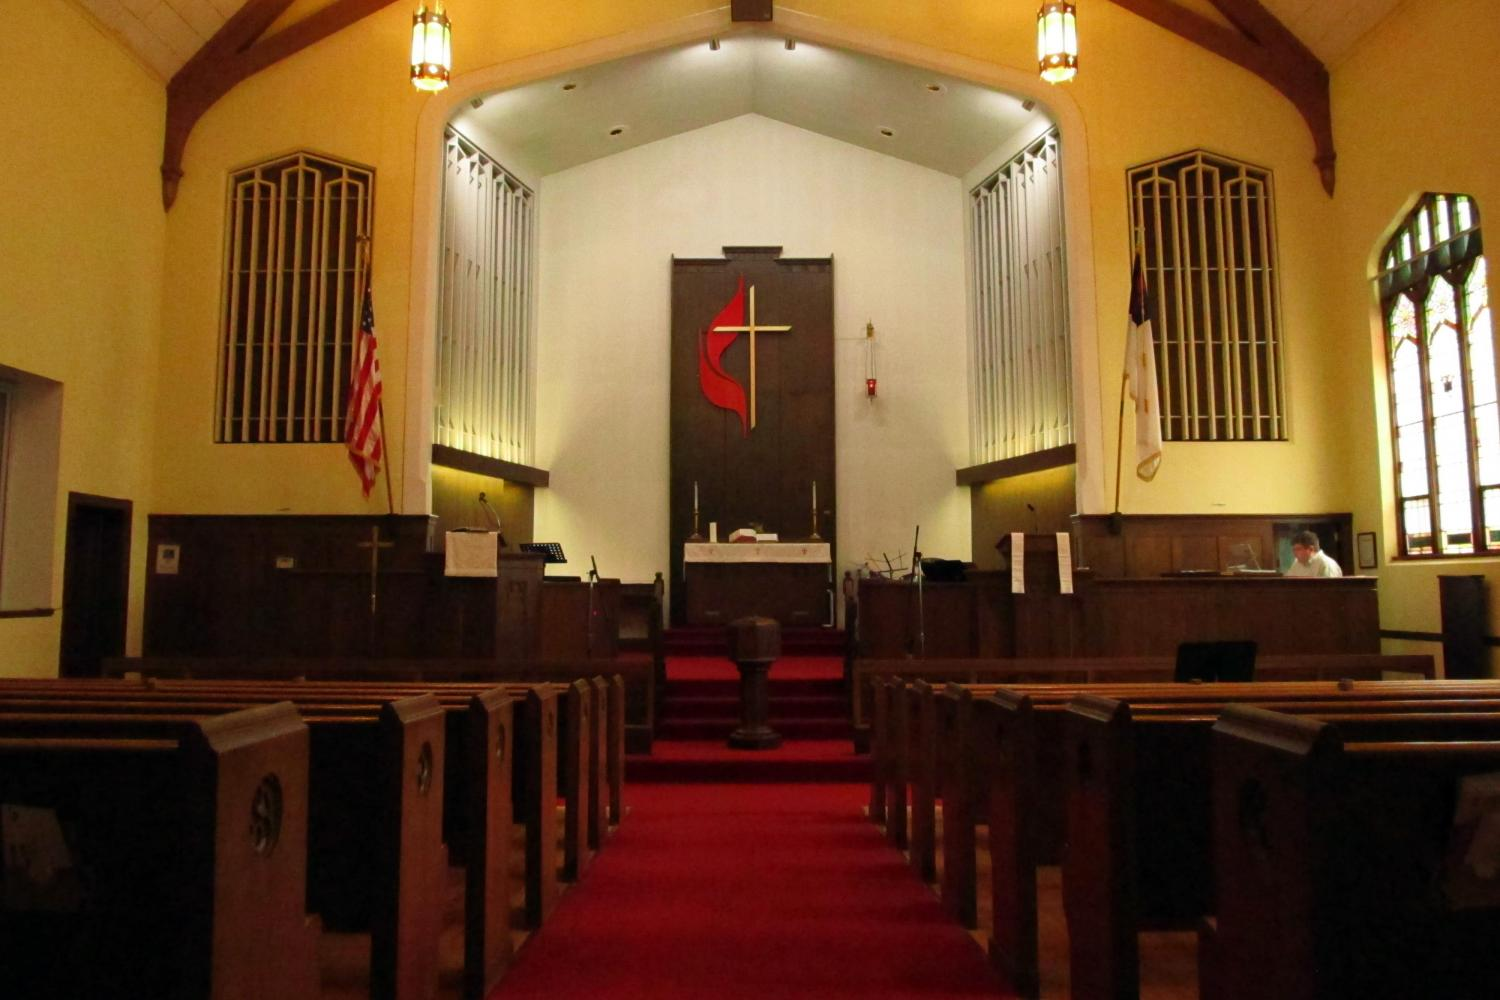 Pews, sanctuary, cross, UMC, United Methodist Church